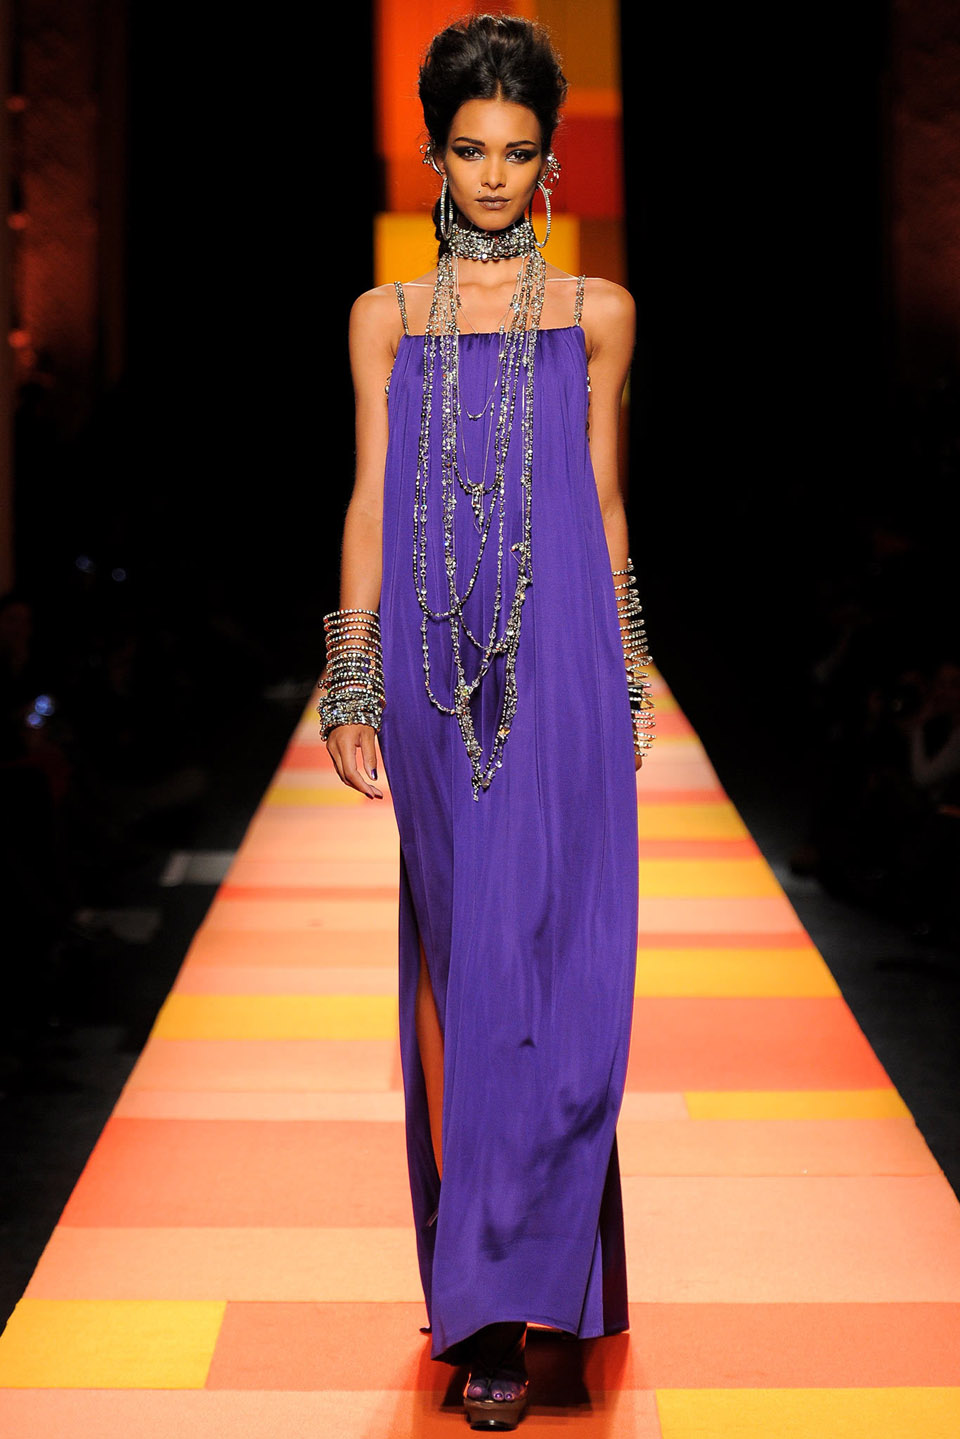 Jean Paul Gaultier Spring - Summer 2013, Haute Couture collection.27